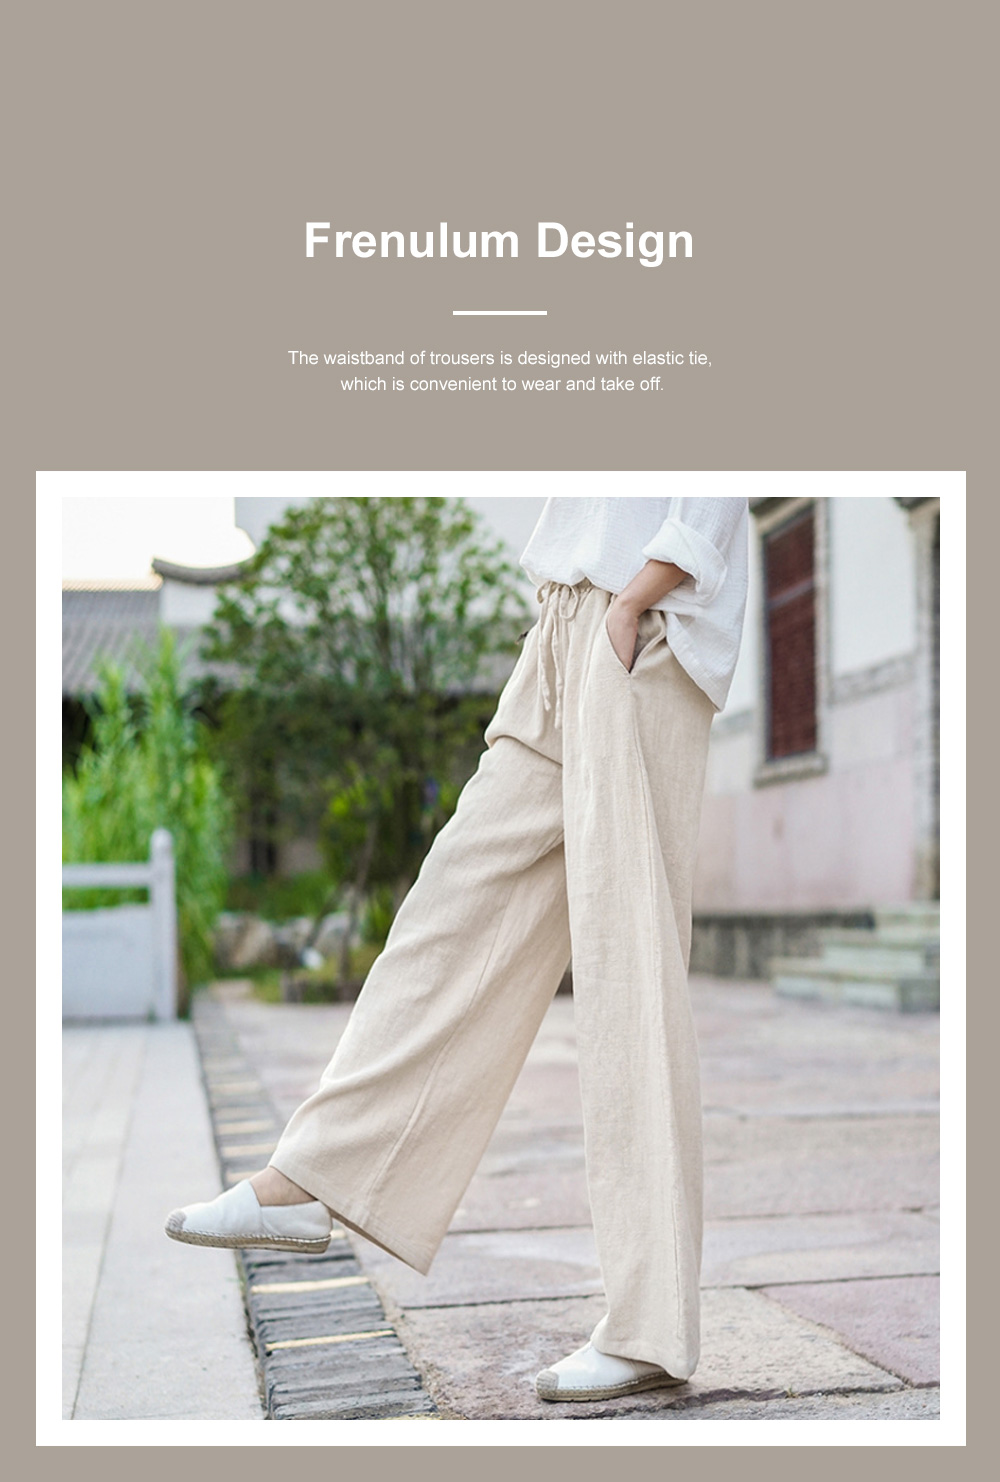 Literature Art Retro Chinese Style Cotton Hemp Leisure Pants Meditation Practice Pant Taiji Pants Linen Pants Women's Wide Leg Pants 2